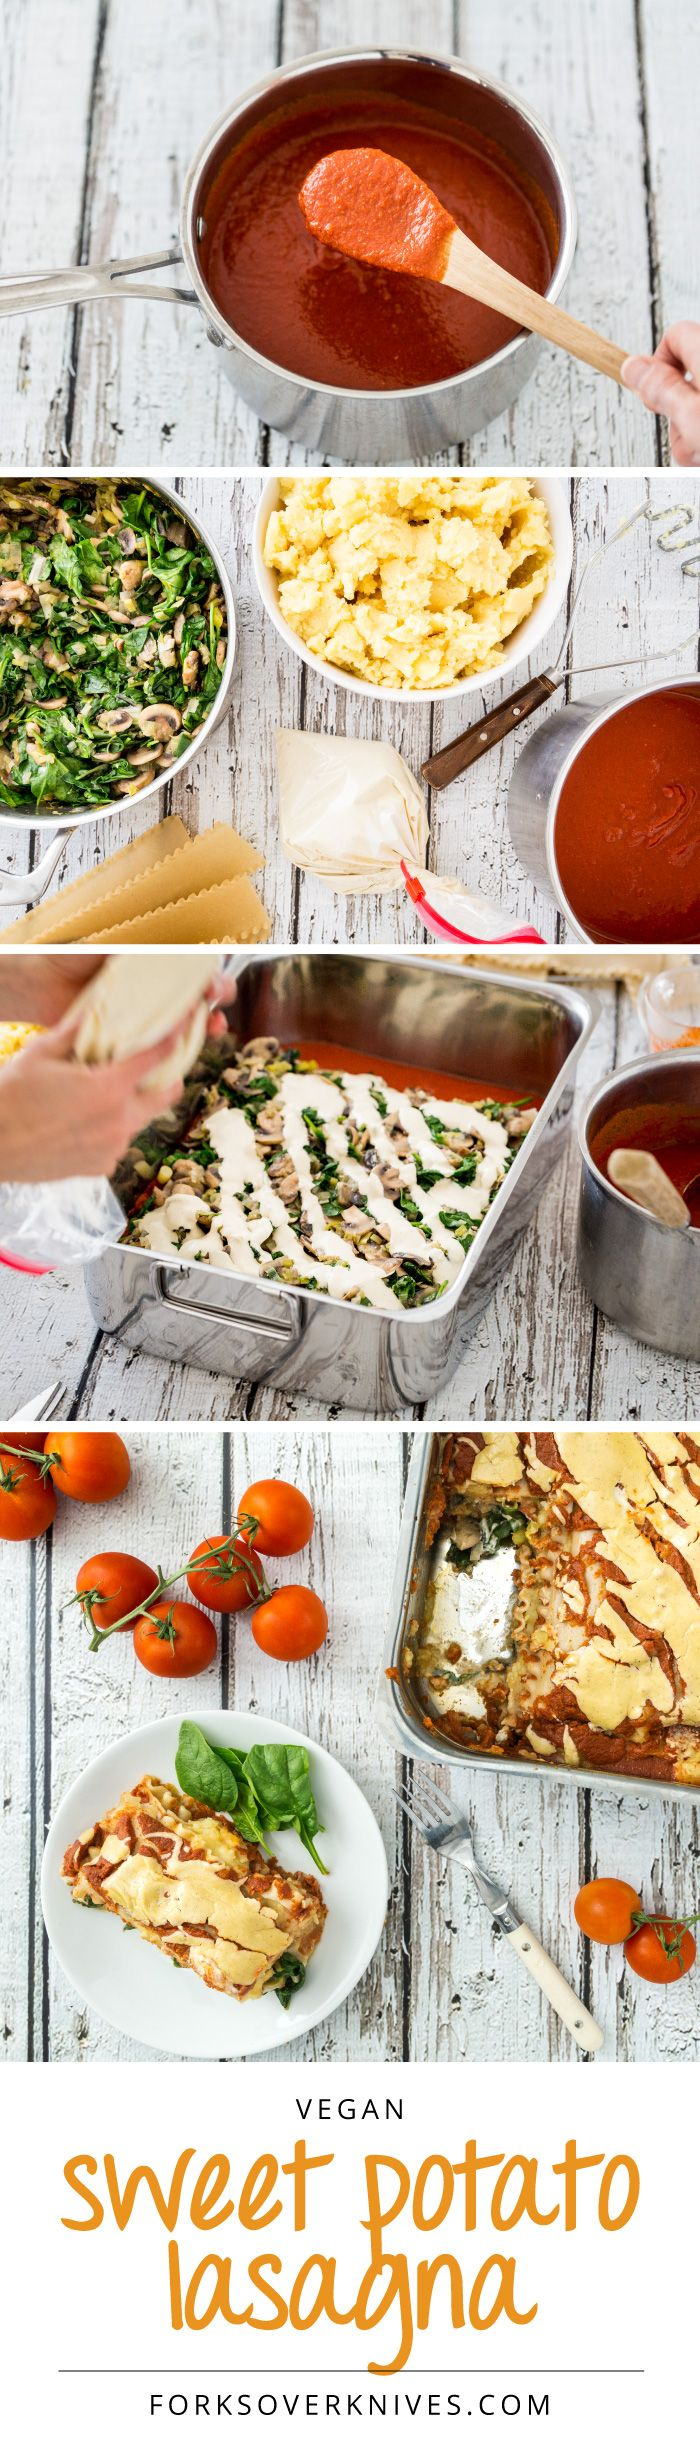 The perfect reward after a big organizing project is complete: Sweet Potato Lasagna